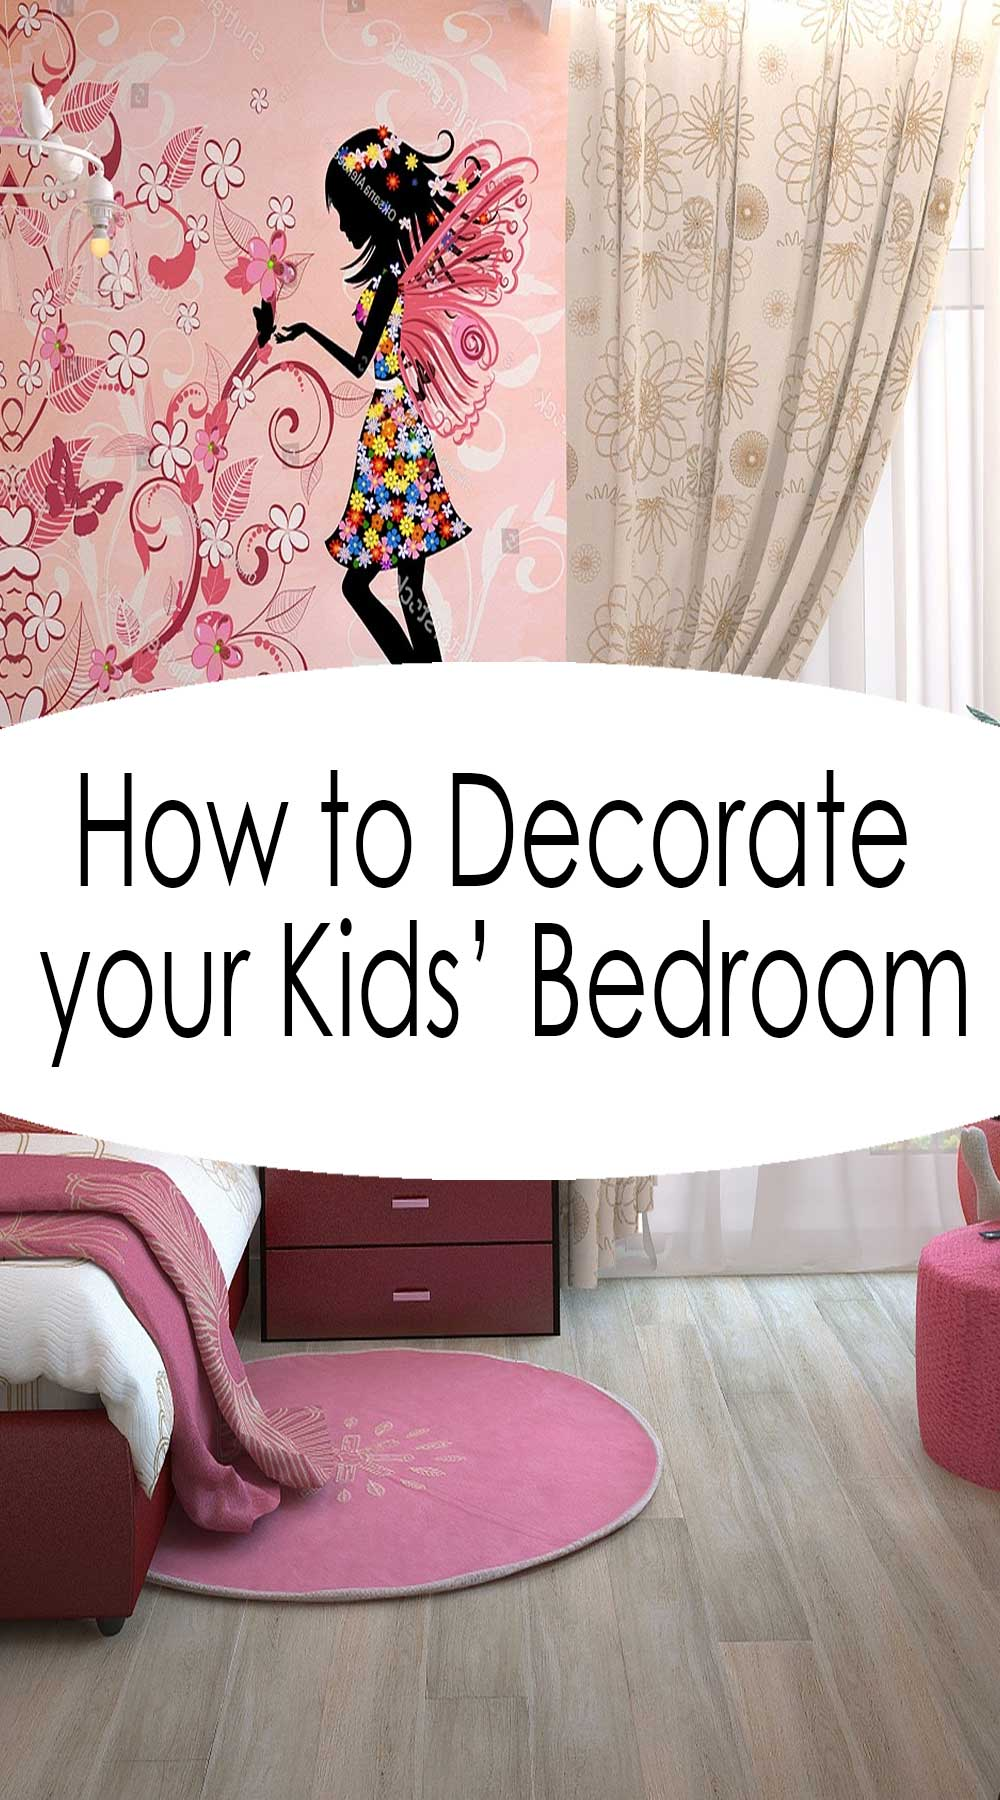 How to Decorate Your Kids' Bedroom